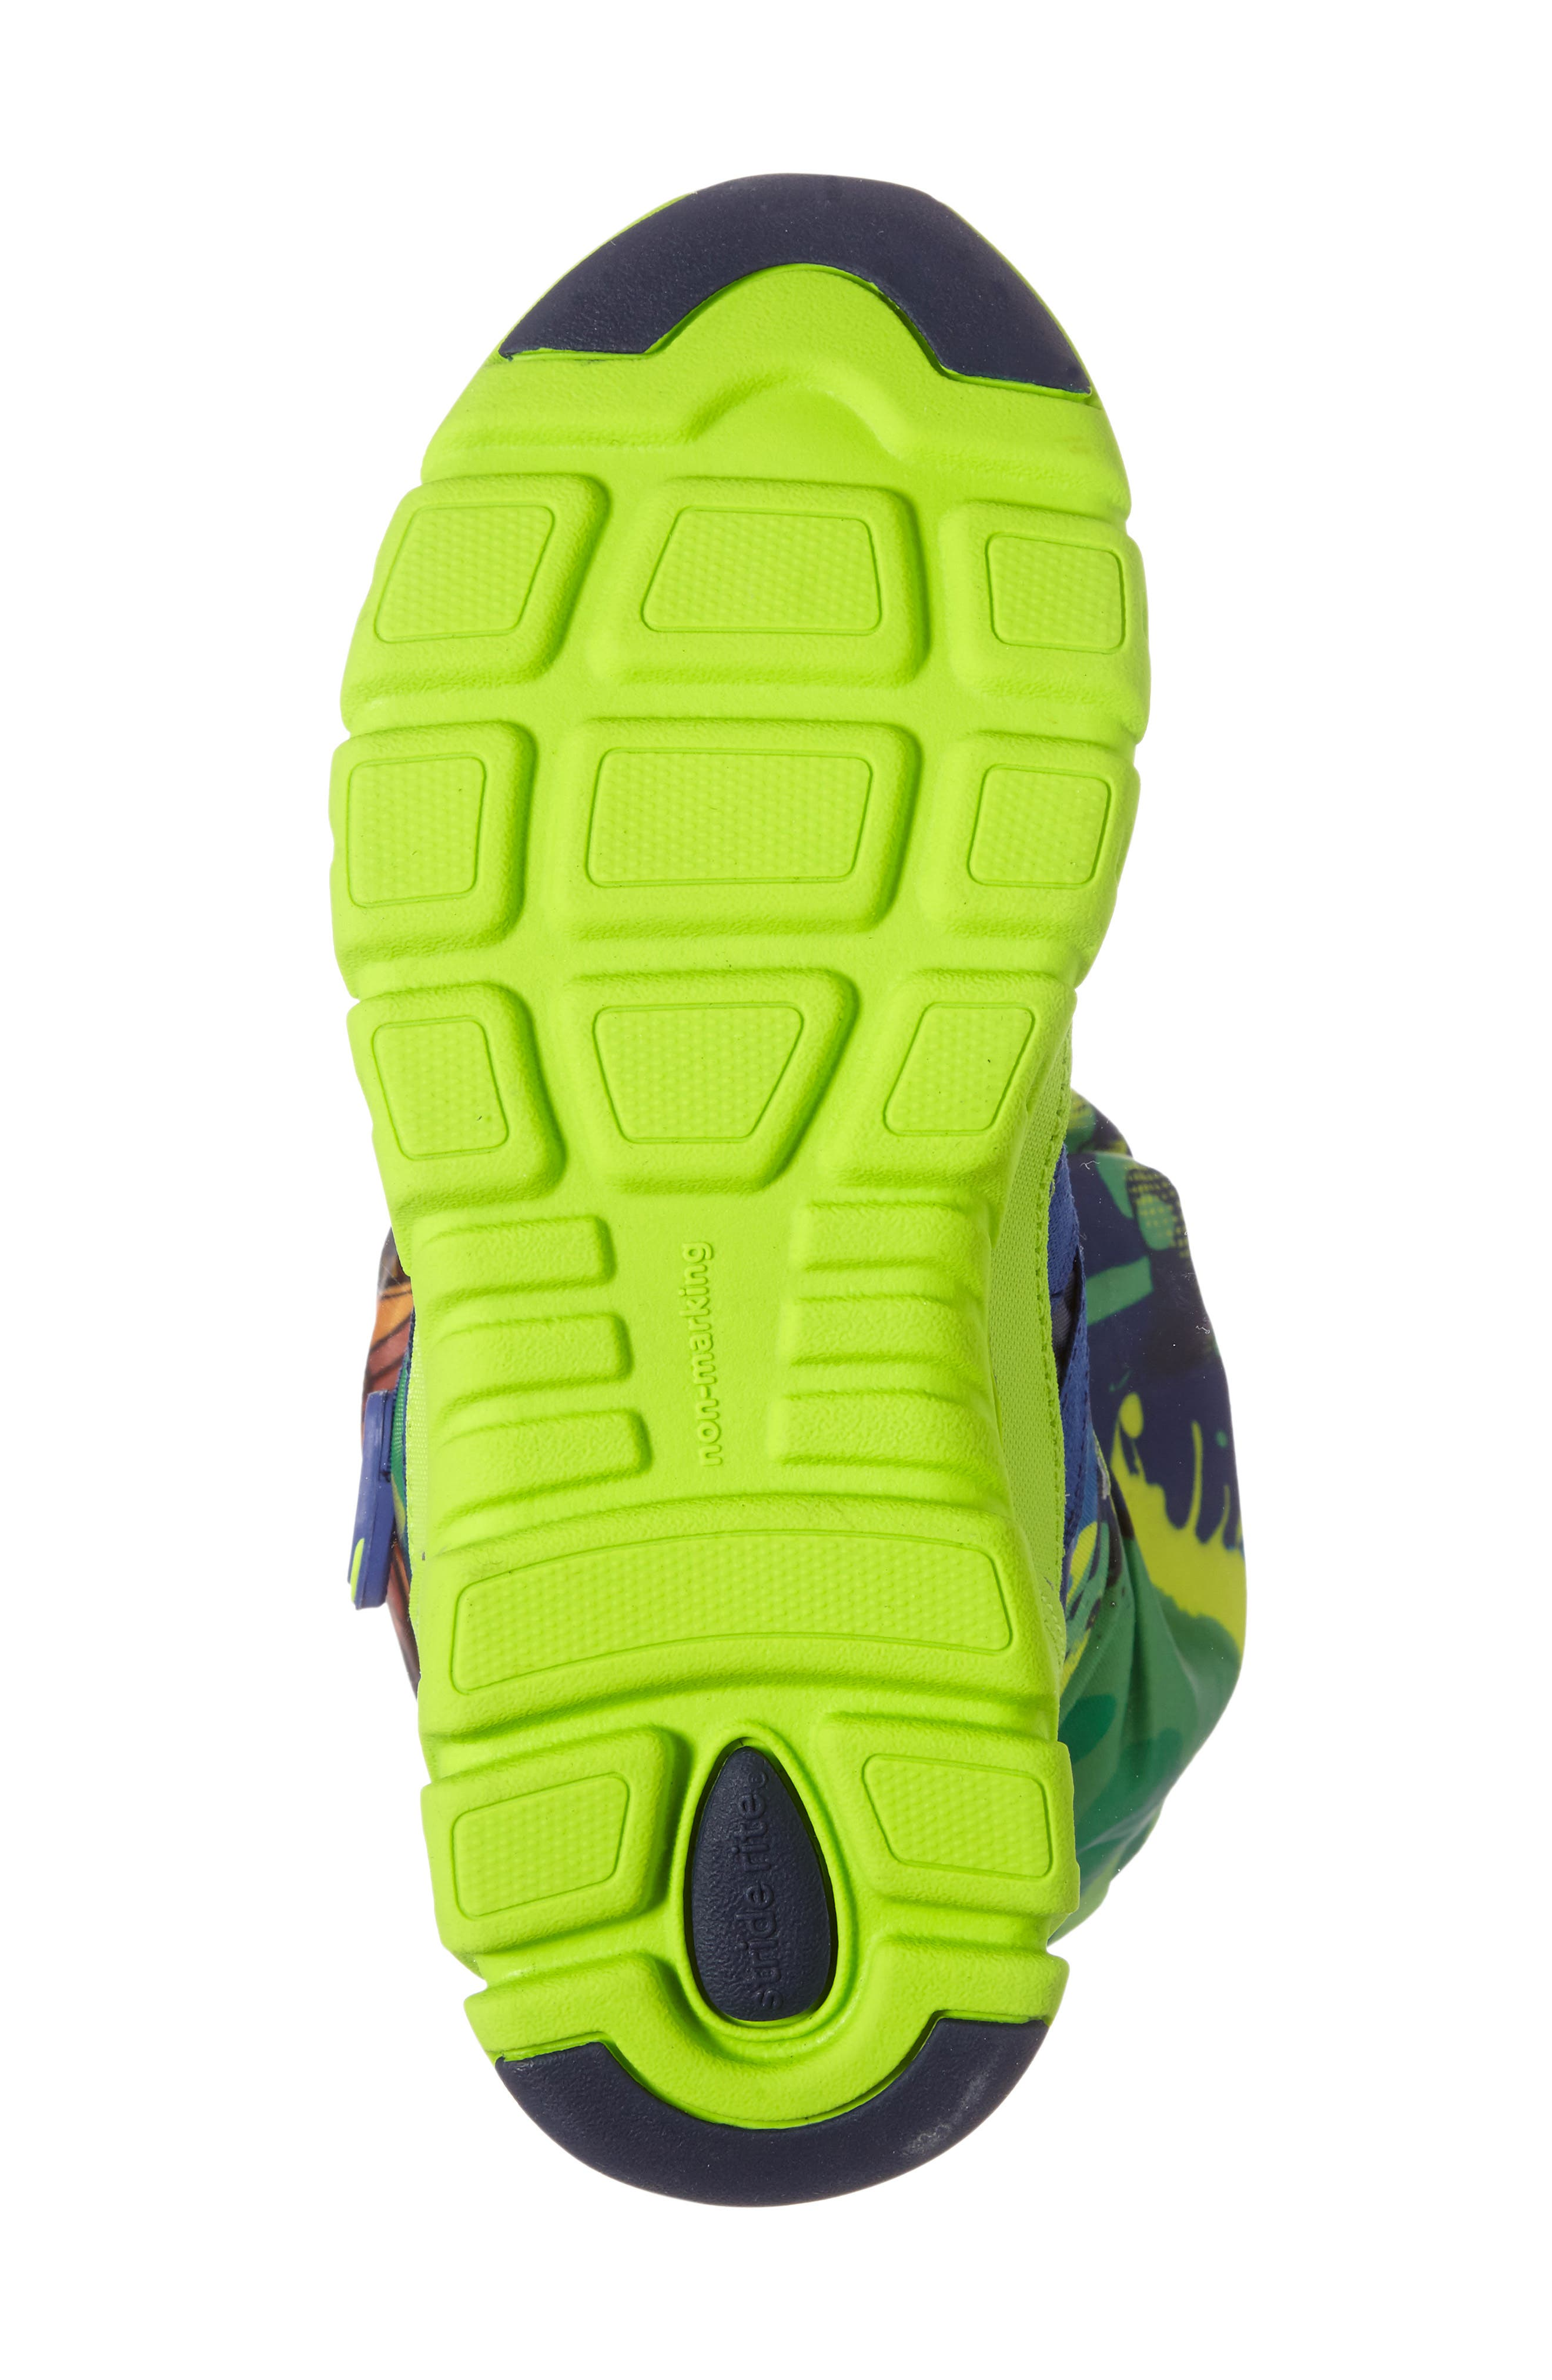 Alternate Image 4  - Stride Rite Made2Play Teenage Mutant Ninja Turtles Sneaker Boot (Baby, Walker, Toddler & Little Kid)